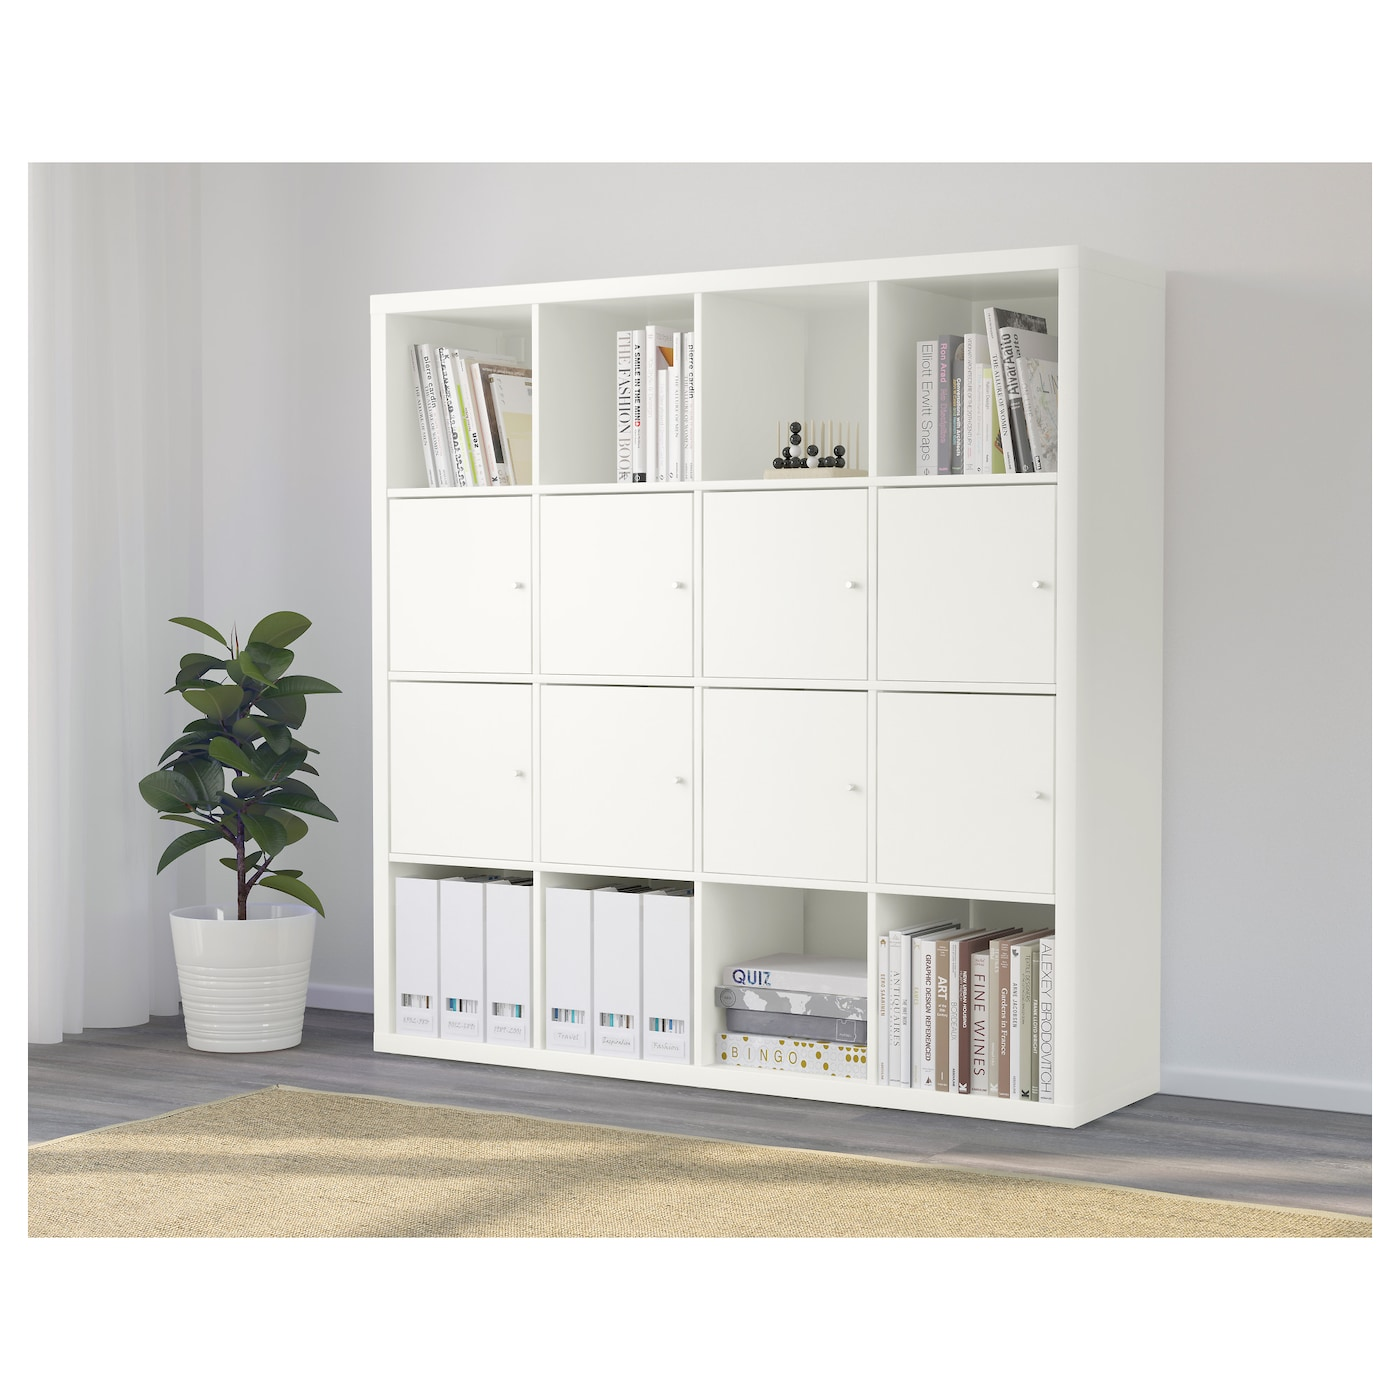 kallax shelving unit with 8 inserts white 147 x 147 cm ikea. Black Bedroom Furniture Sets. Home Design Ideas